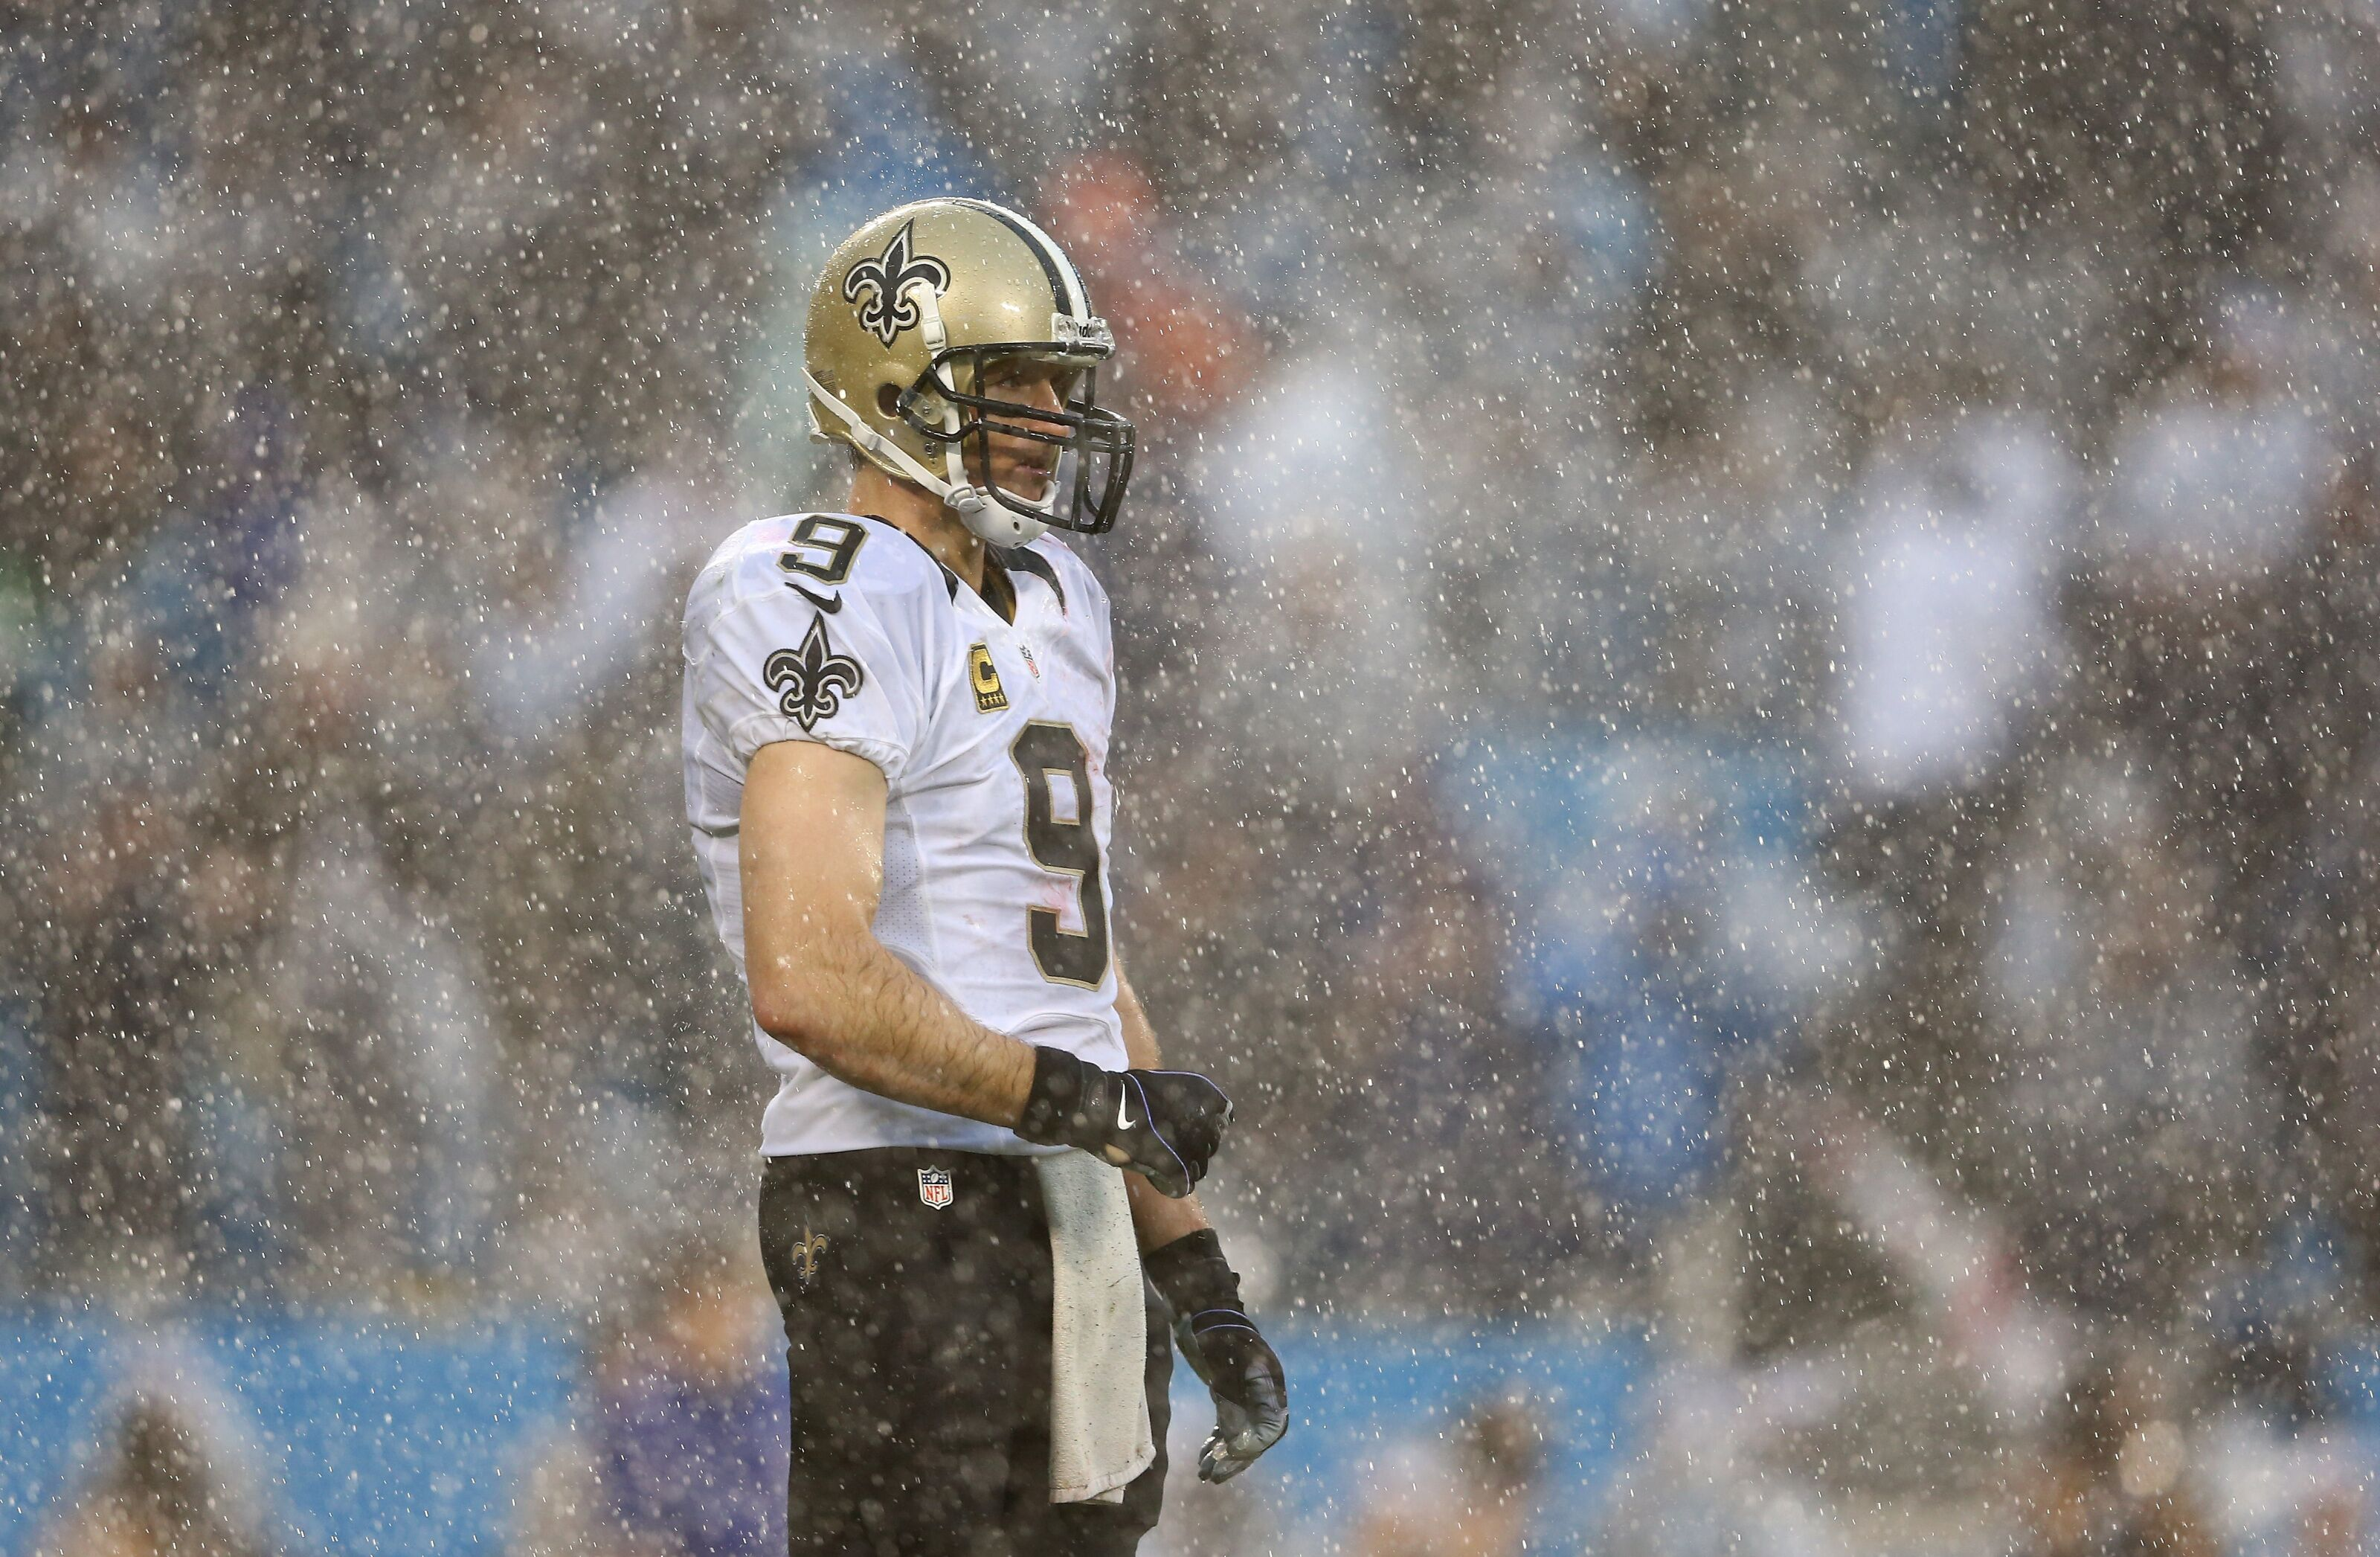 Drew Brees: How did worst QB draft of all time produce GOAT